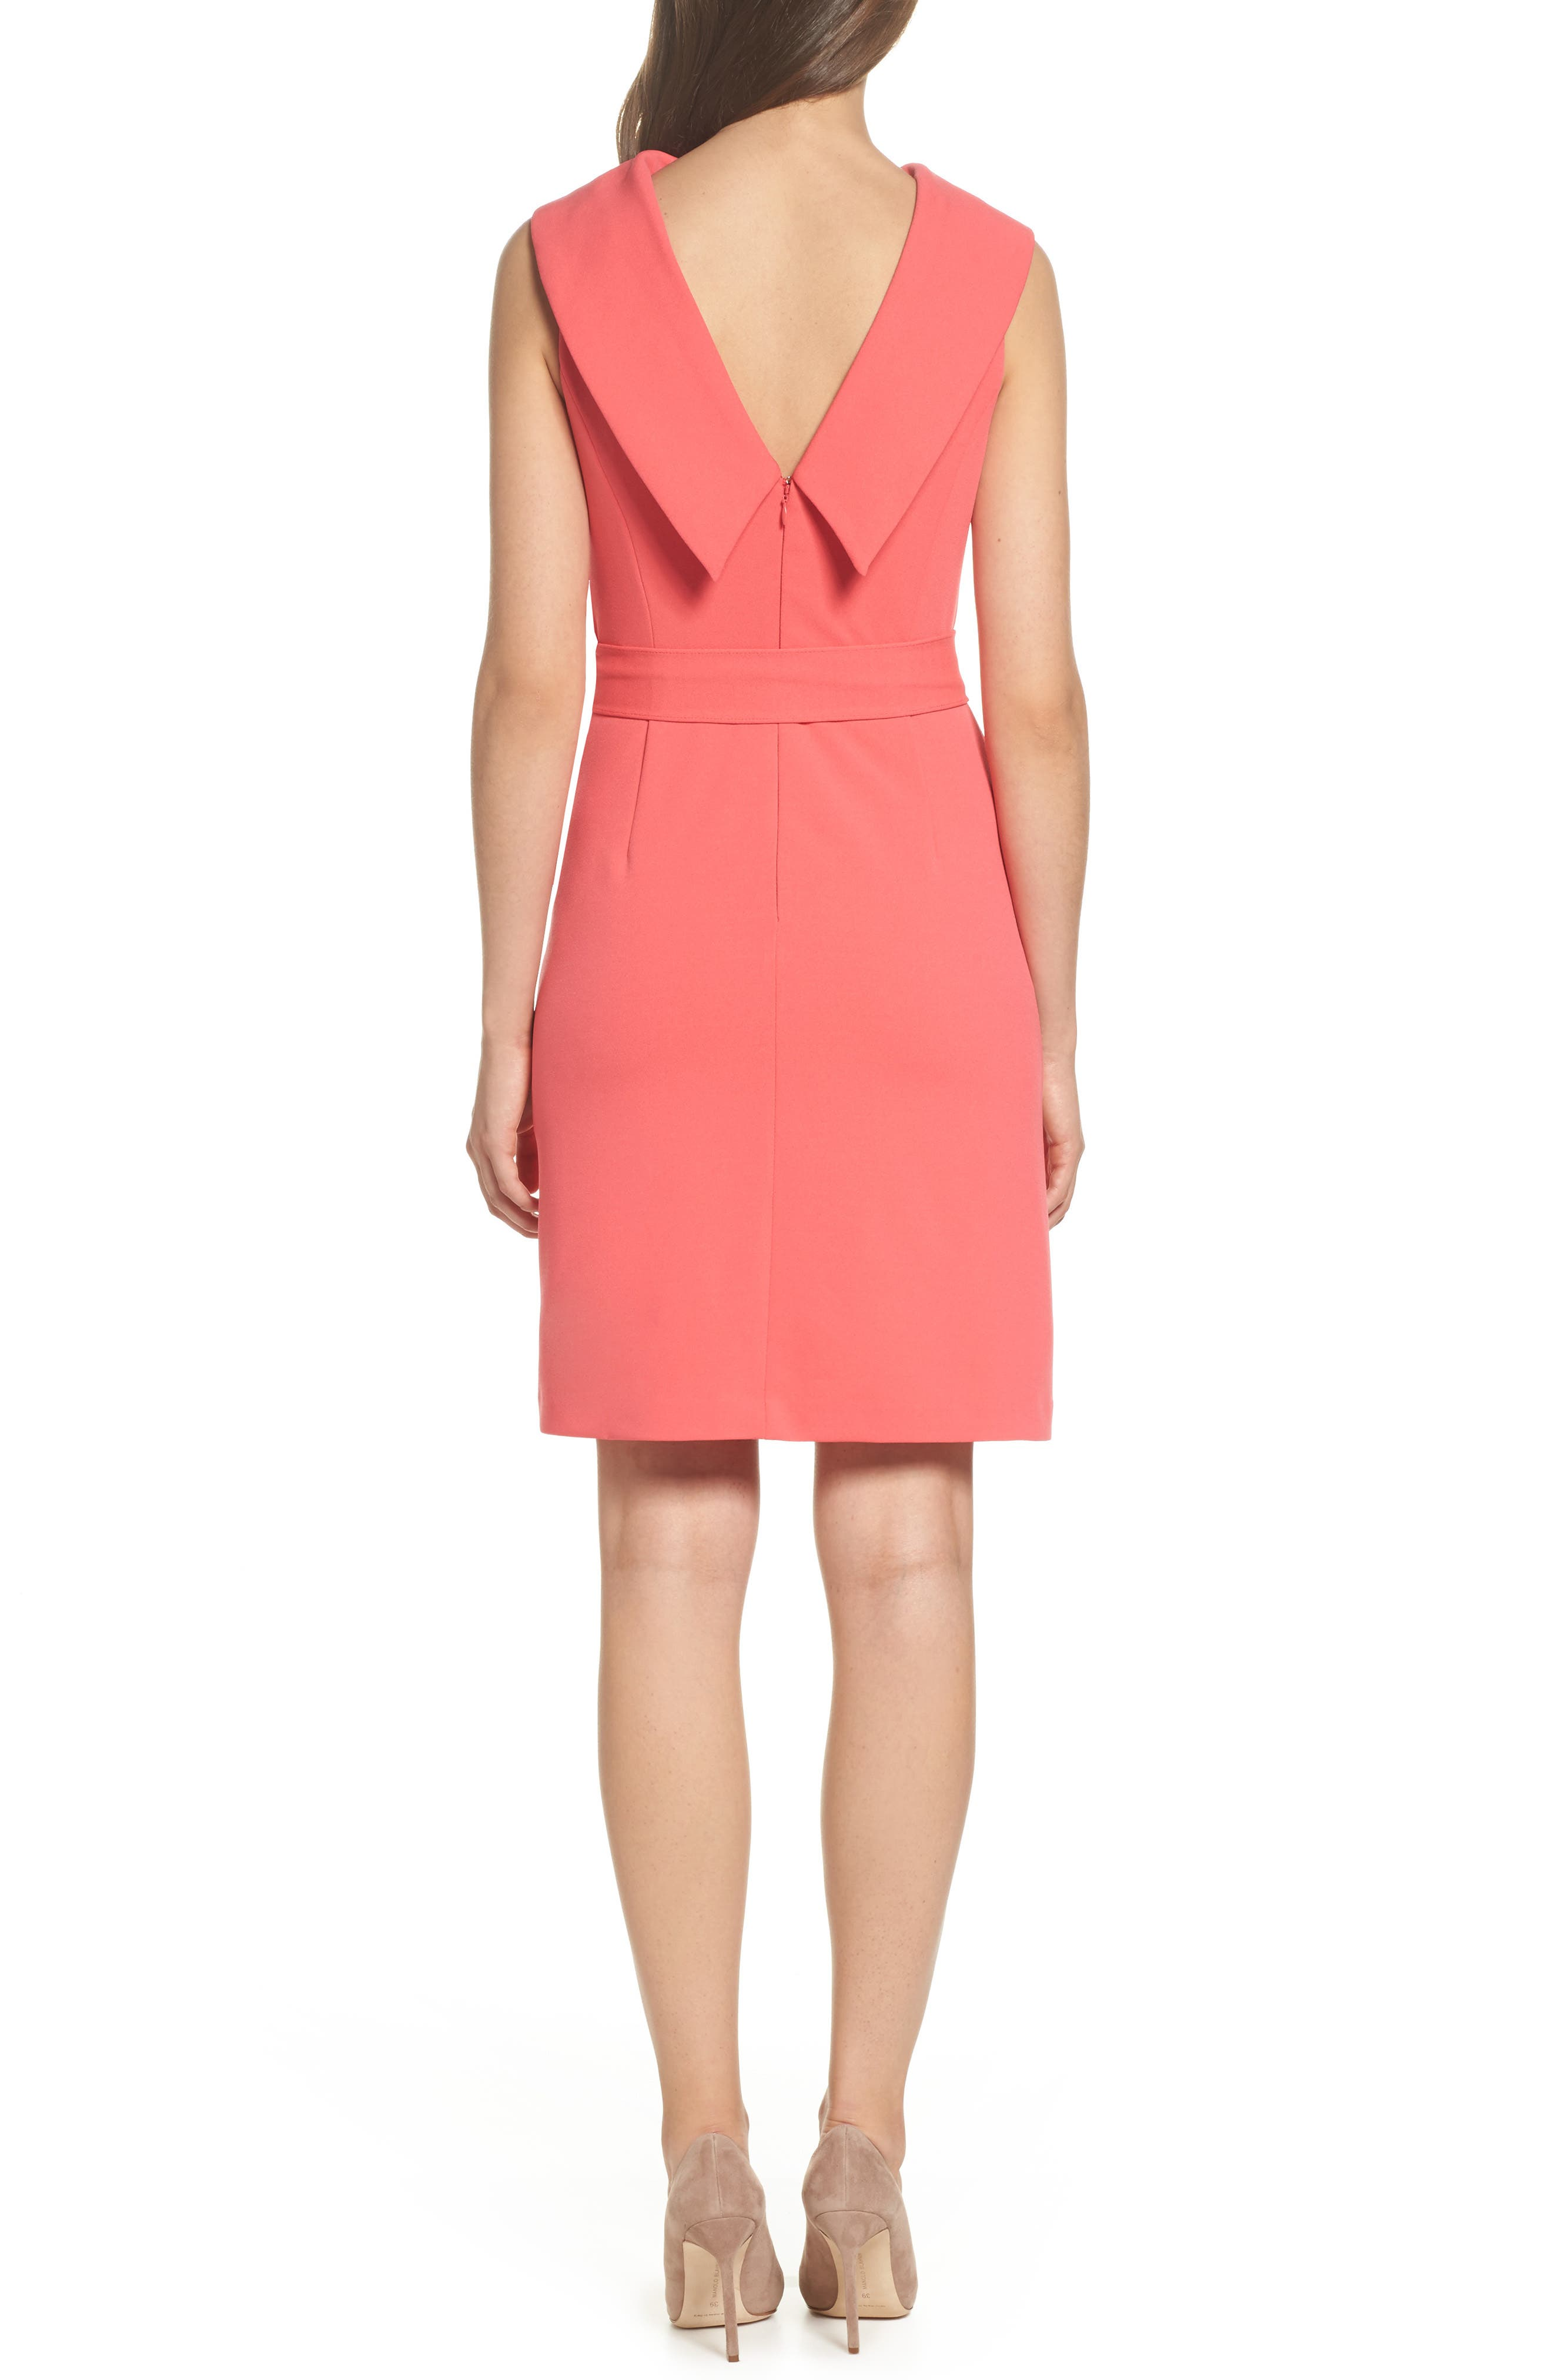 ADRIANNA PAPELL,                             Roll Neck Crepe Dress,                             Alternate thumbnail 2, color,                             650